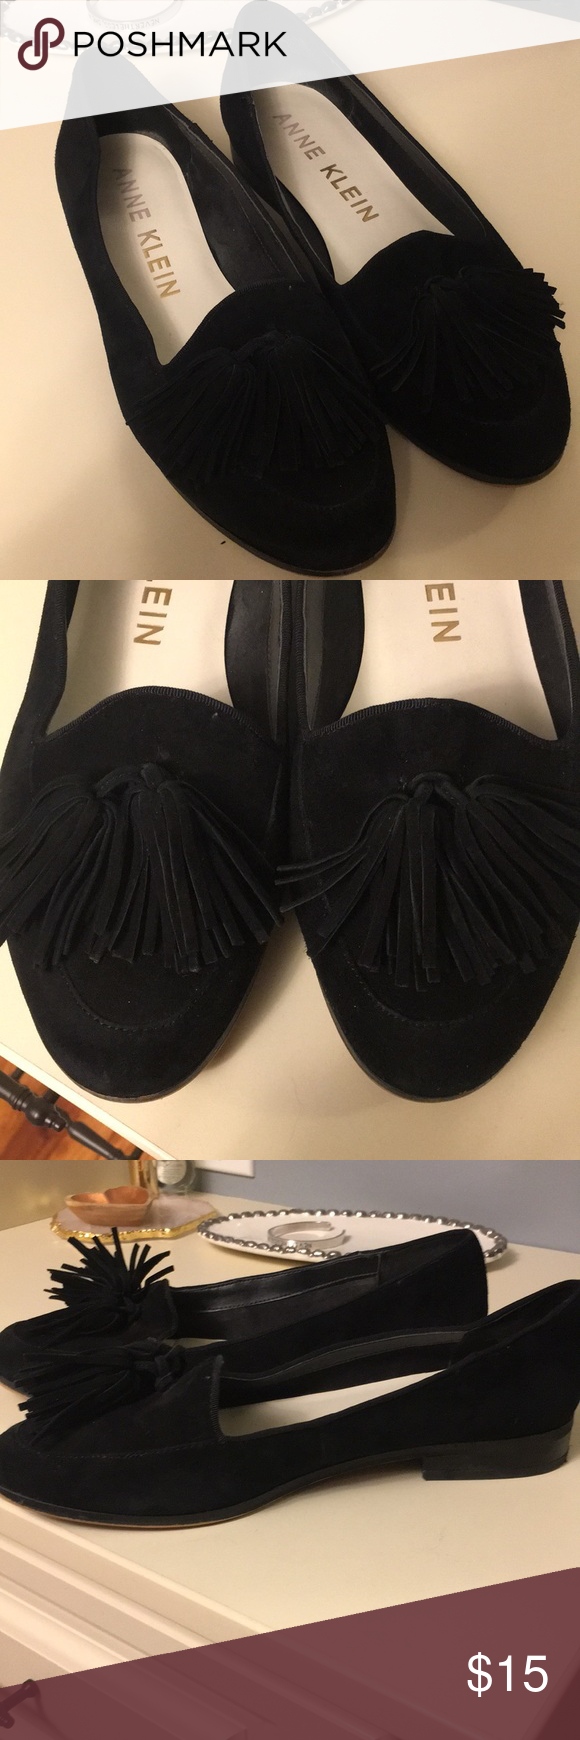 163fae5ffc5 Anne Klein Darcy loafer Black loafer with tassel Anne Klein Shoes Flats    Loafers